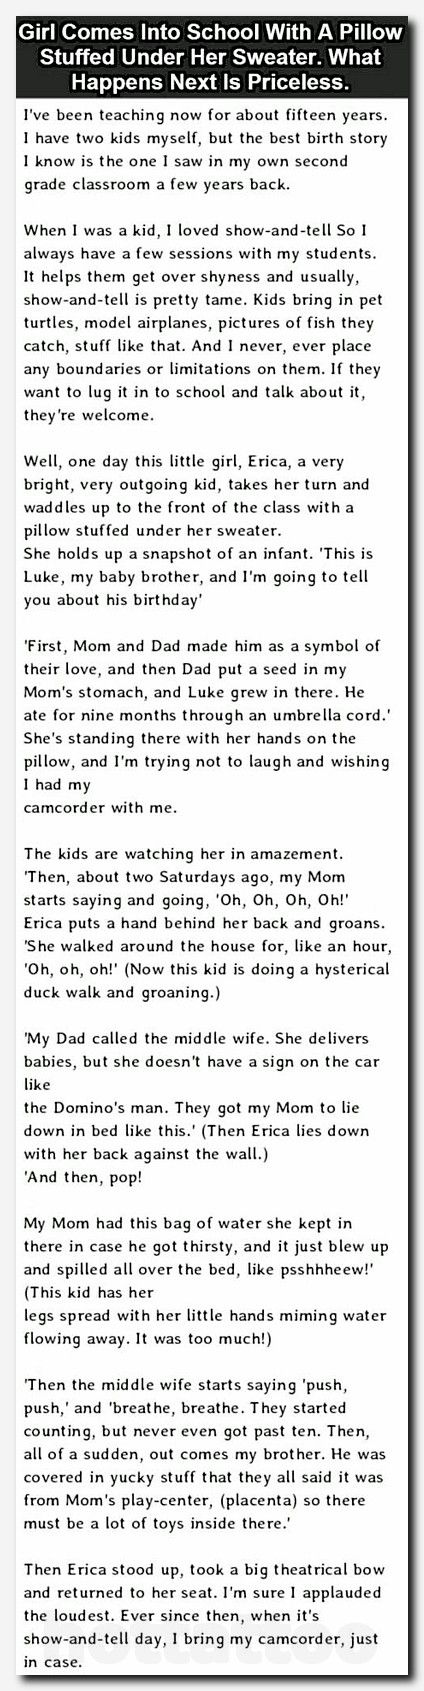 #humor #funny best fat jokes, intelligent funny jokes, what is british humor, humor mobile, funny hispanic jokes, comic strio, dirty blonde jokes for adults, free online youtube downloader mp4, chistes cortos y, funny fights, cute ecards for boyfriend, funny new sayings, great one liner jokes, top school rankings, fun games for 3, blonde one liner jokes